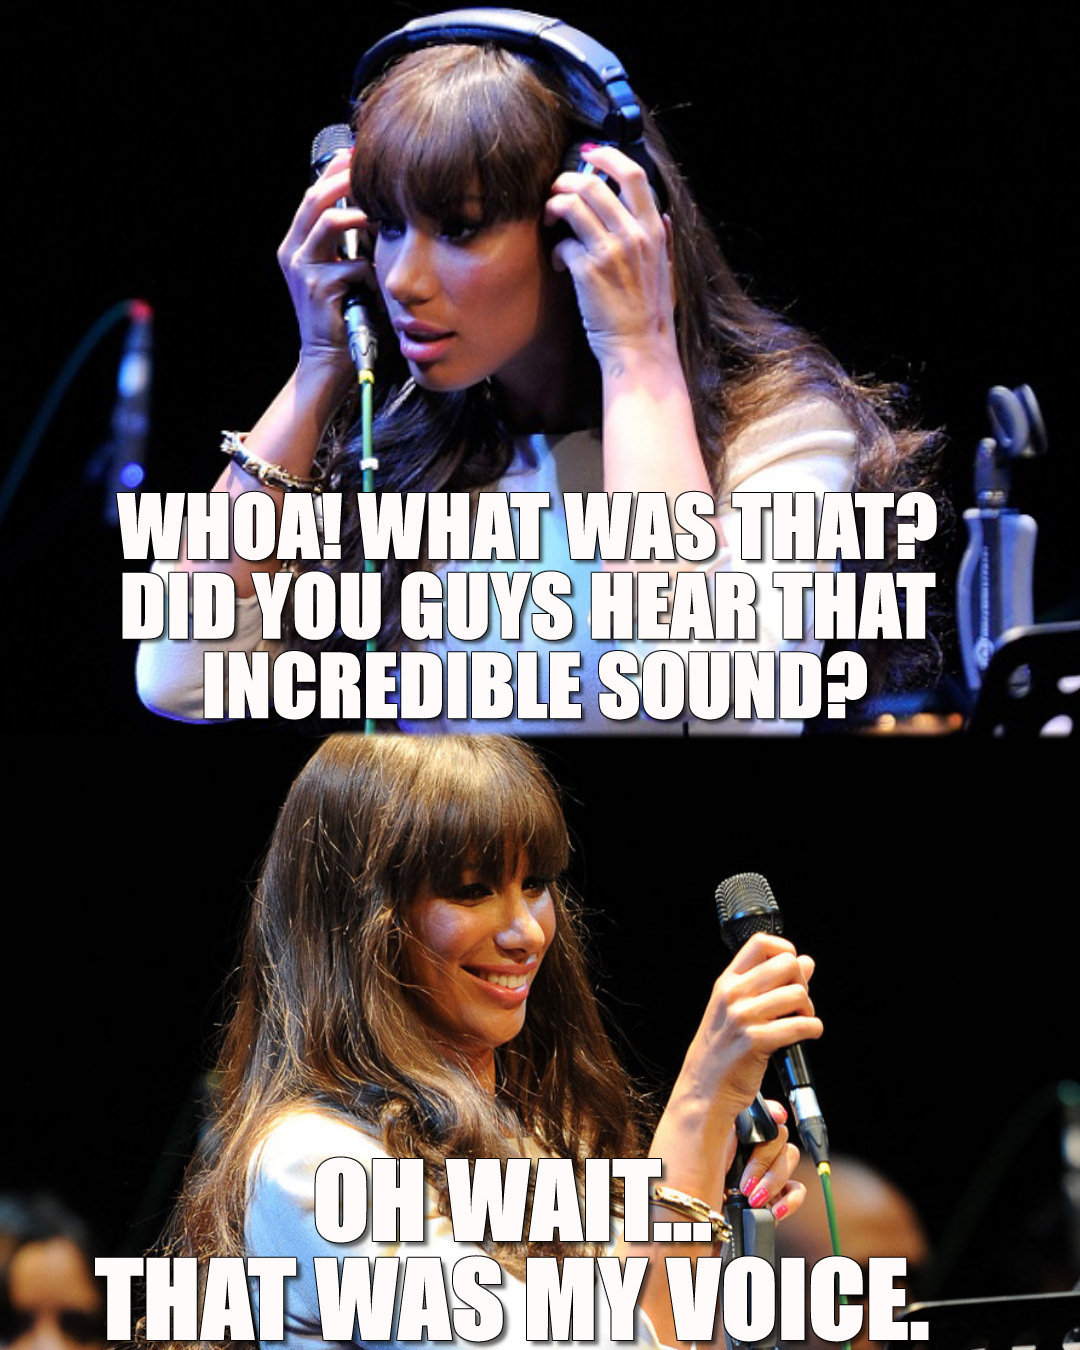 leonalewismemes:  —- Post #334 —- _______________________ Follow our Tumblr page (if you haven't already) Like our Facebook Page Follow us on Twitter Subscribe to us on Youtube Email us any ideas, memes, photos, videos, questions, ideas, comments or inquiries etc: leonalewismemes@hotmail.com